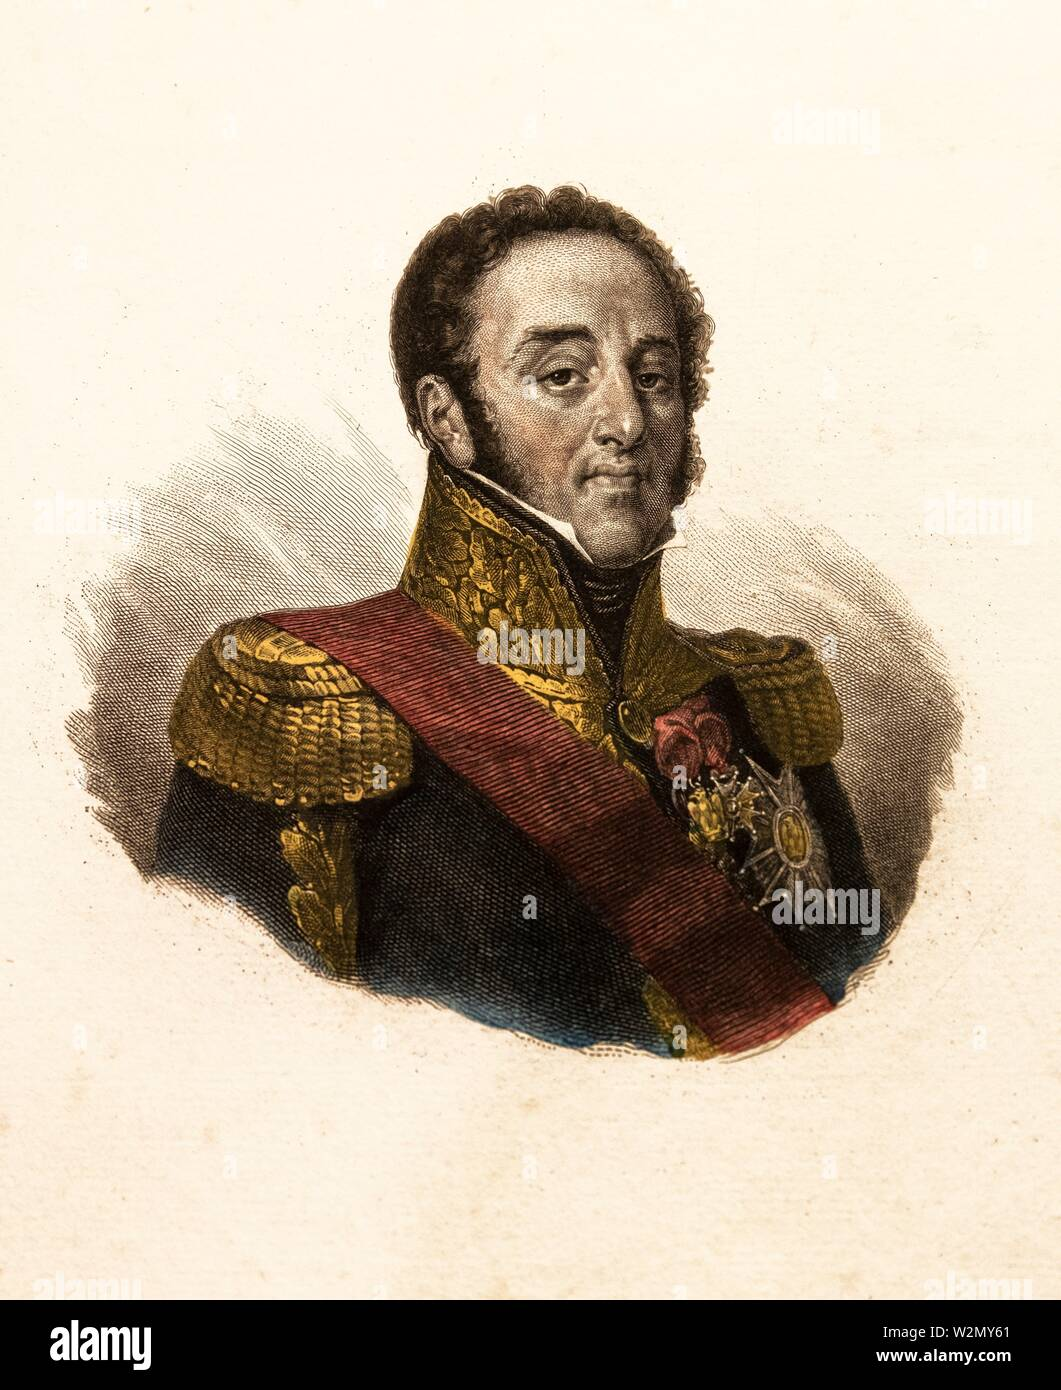 Louis-Gabriel Suchet.Louis-Gabriel Suchet (2 March 1770-3 January 1826), Duke of Albufera , was a French Marshal of the Empire and one of the most - Stock Image